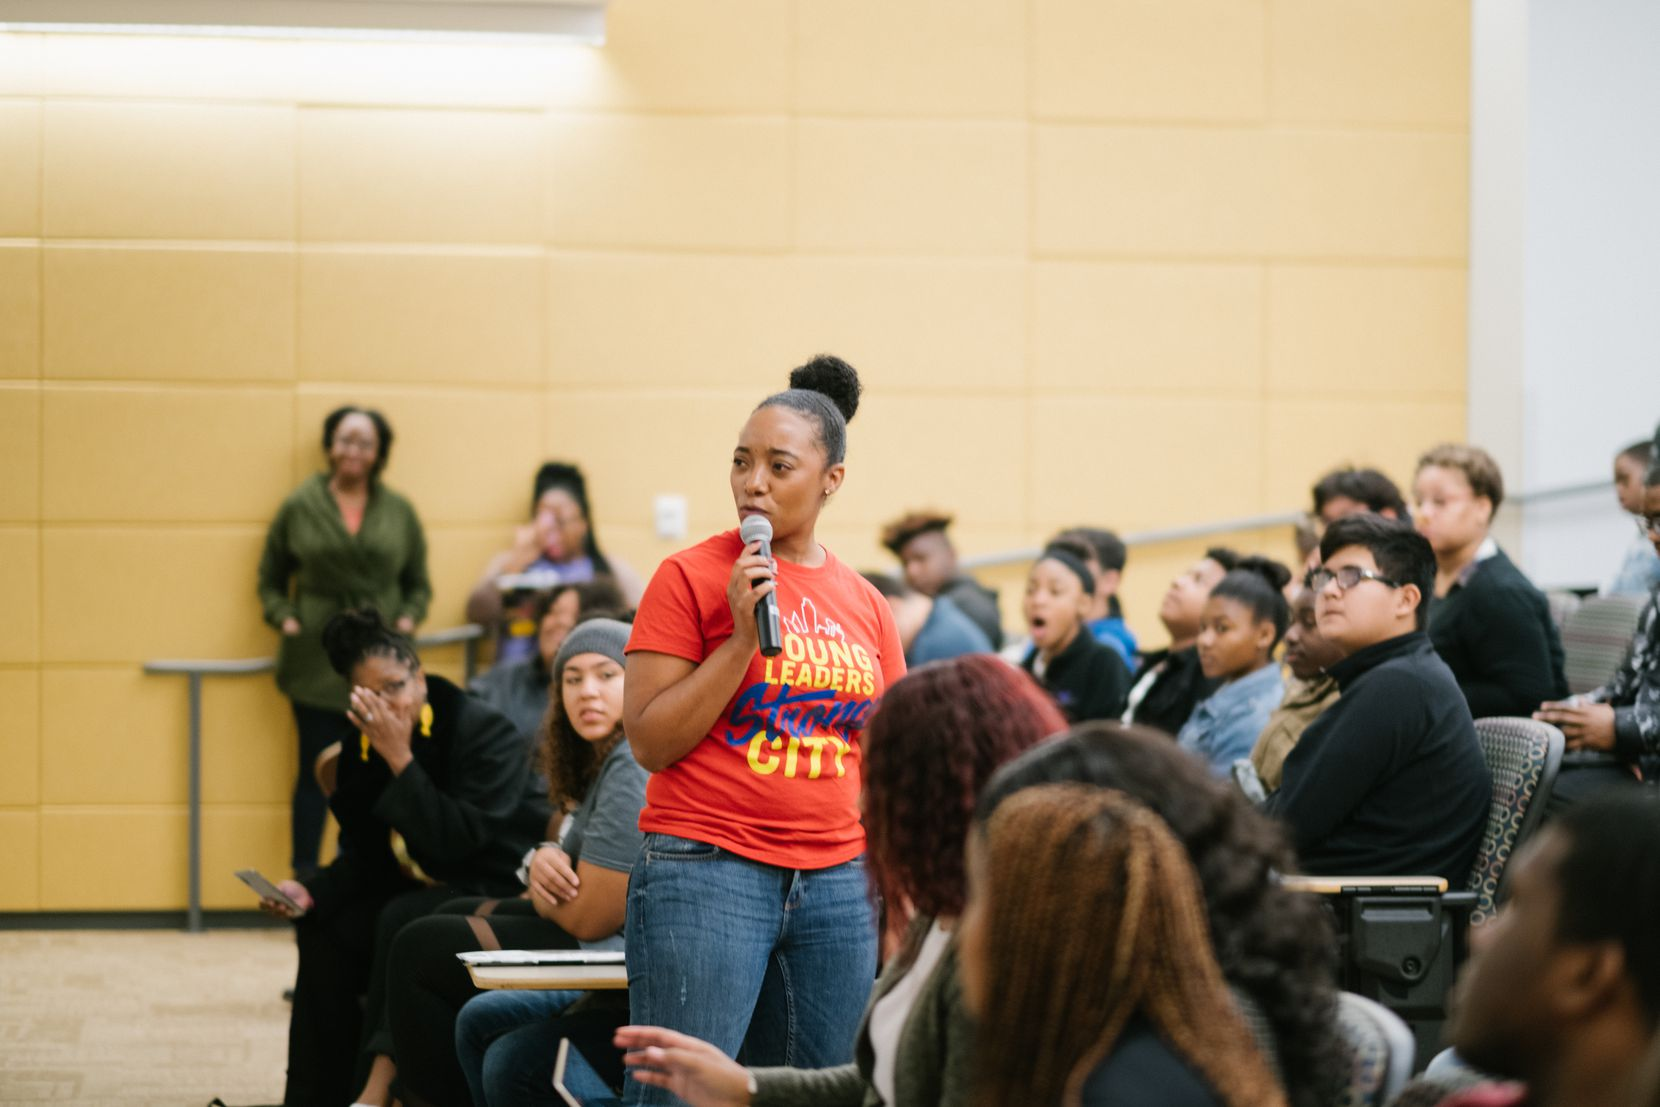 Amber Sims, co-founder of Young Leaders, Strong City, led a workshop with high school students in 2019.